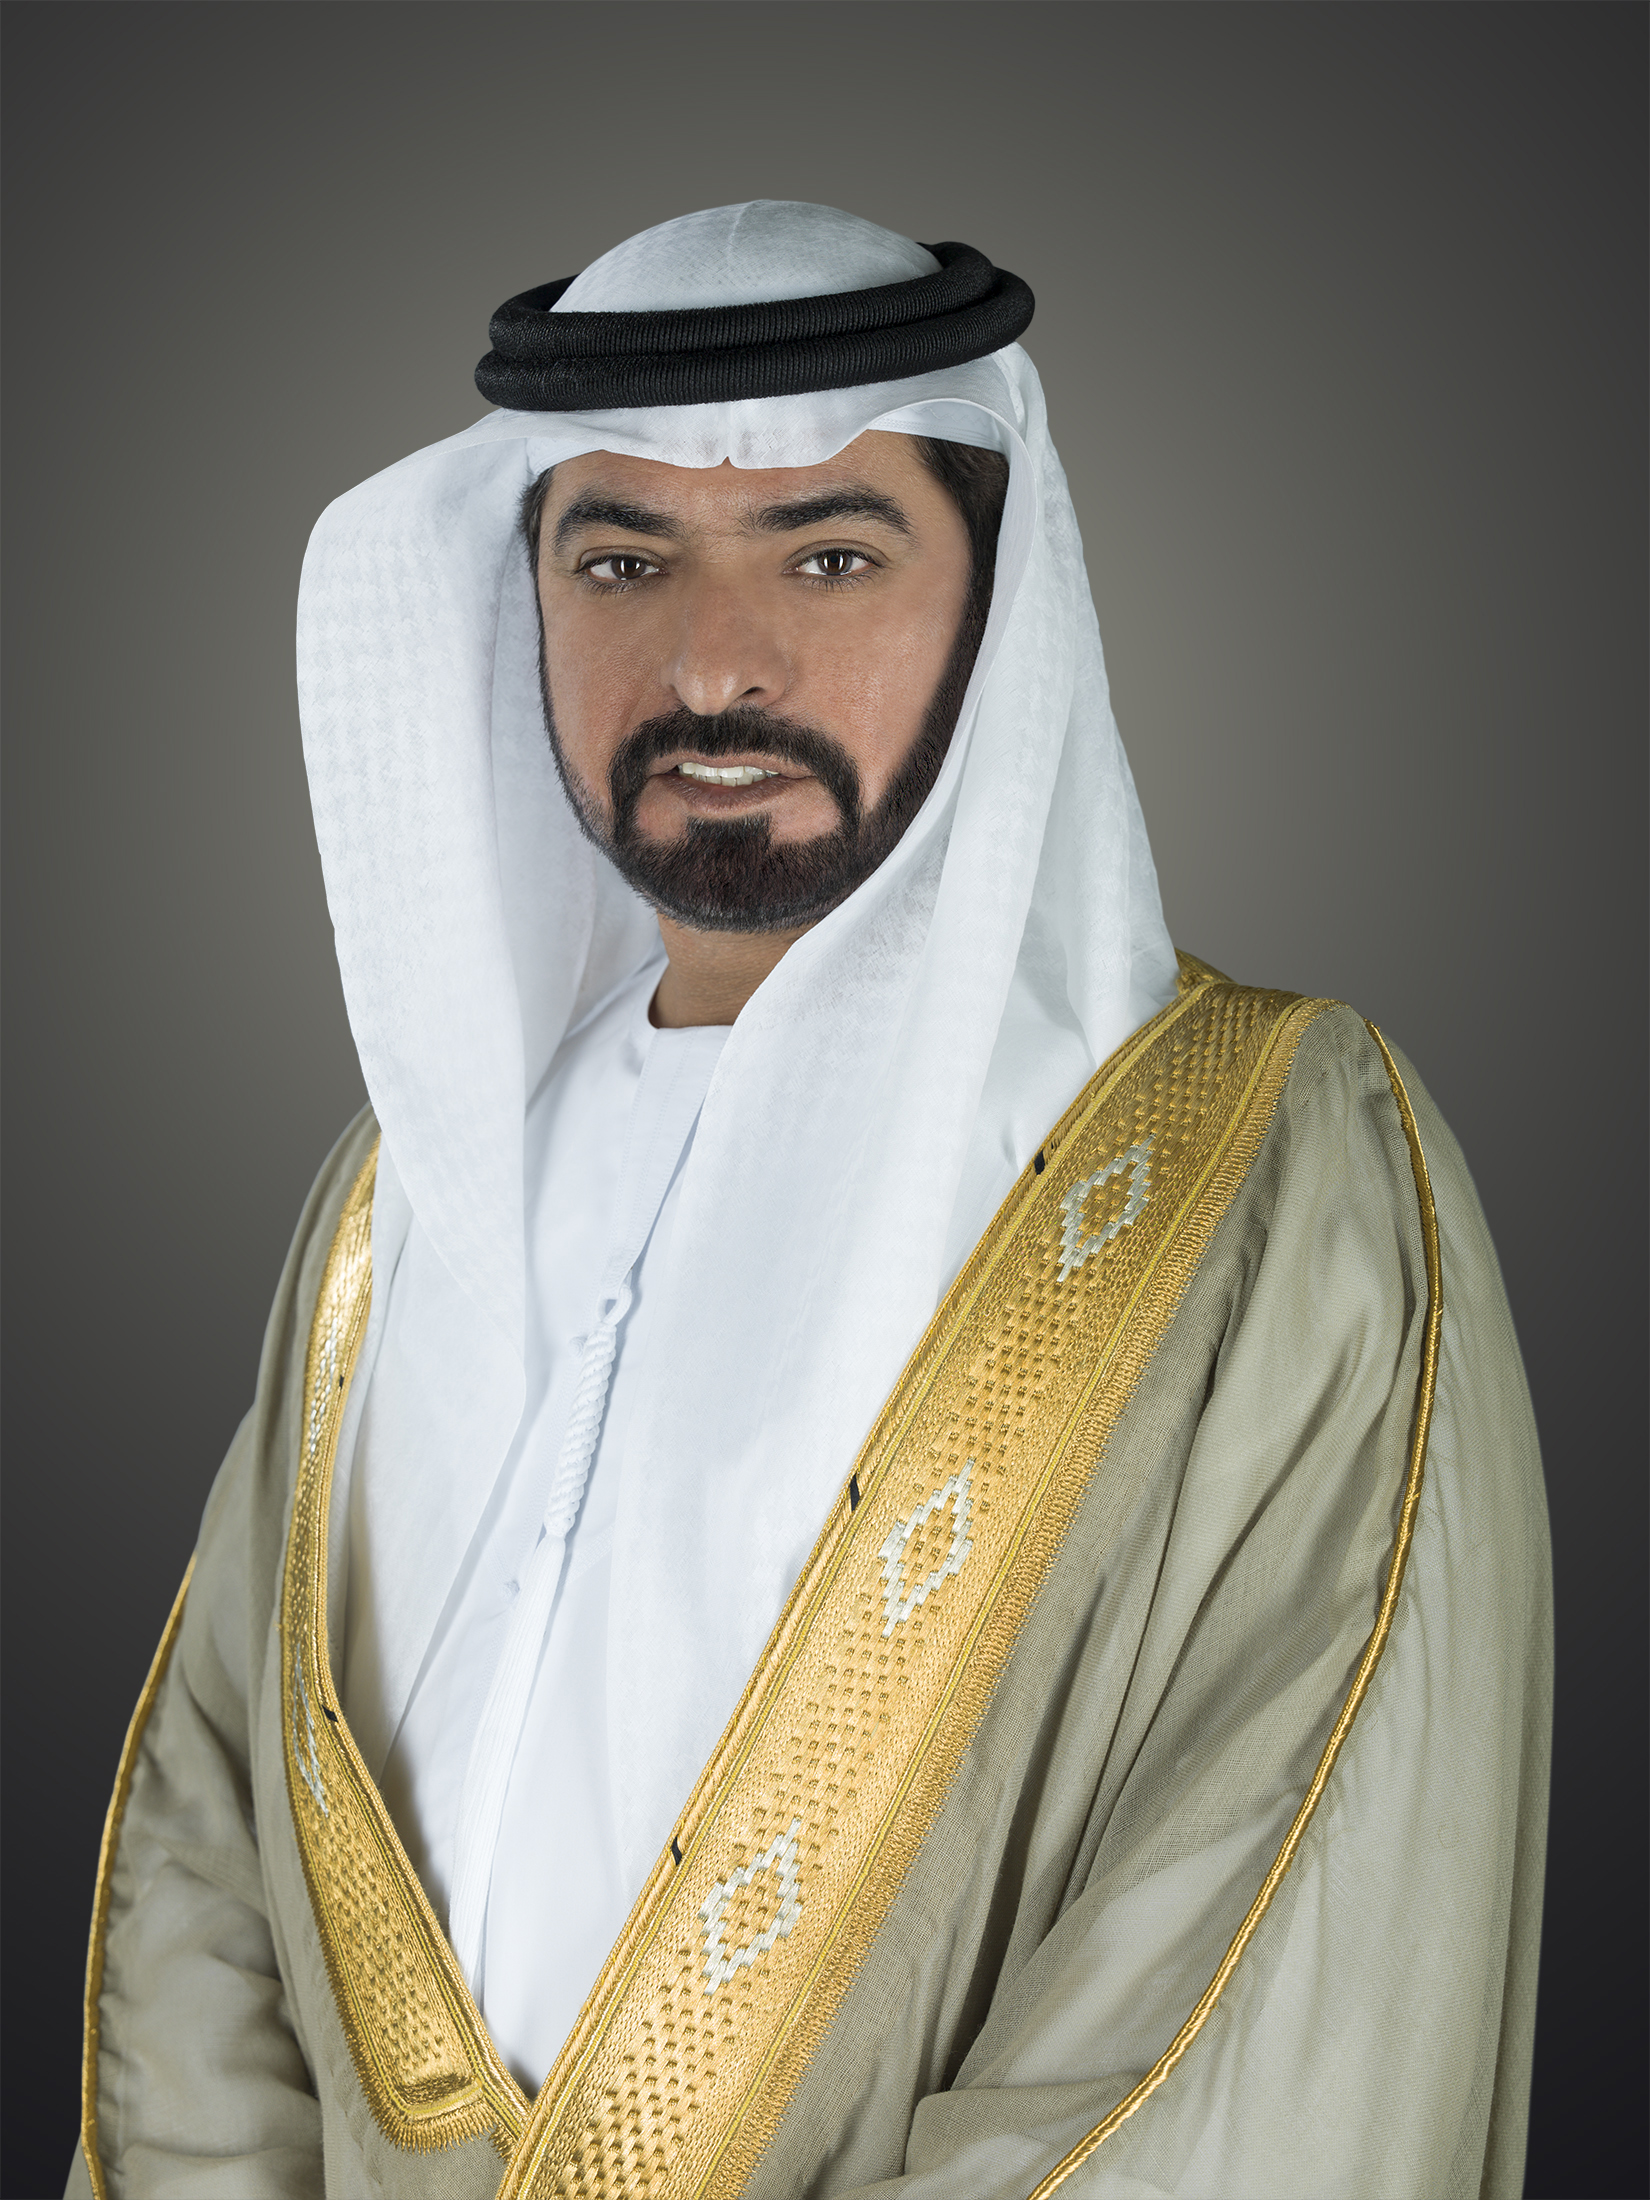 Mohammed Bin Rashid S Initiative Confirms The Cultural And Humanitarian Role Played By The Uae